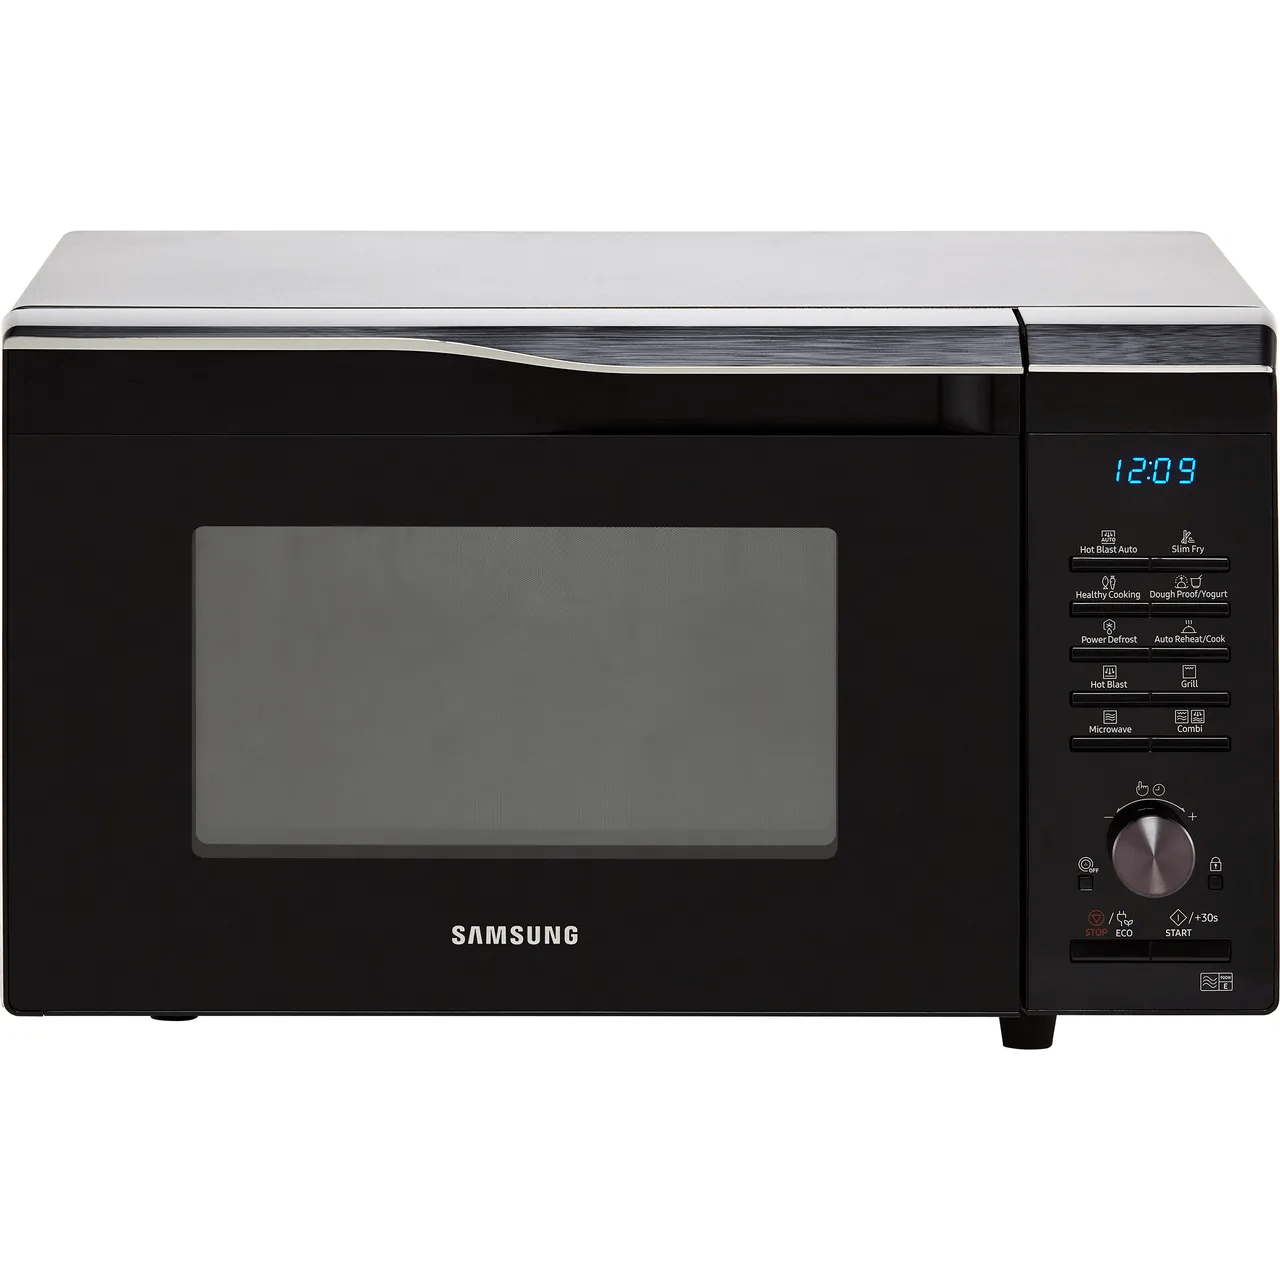 samsung easy view mc28m6055ck 28 litre combination microwave oven black